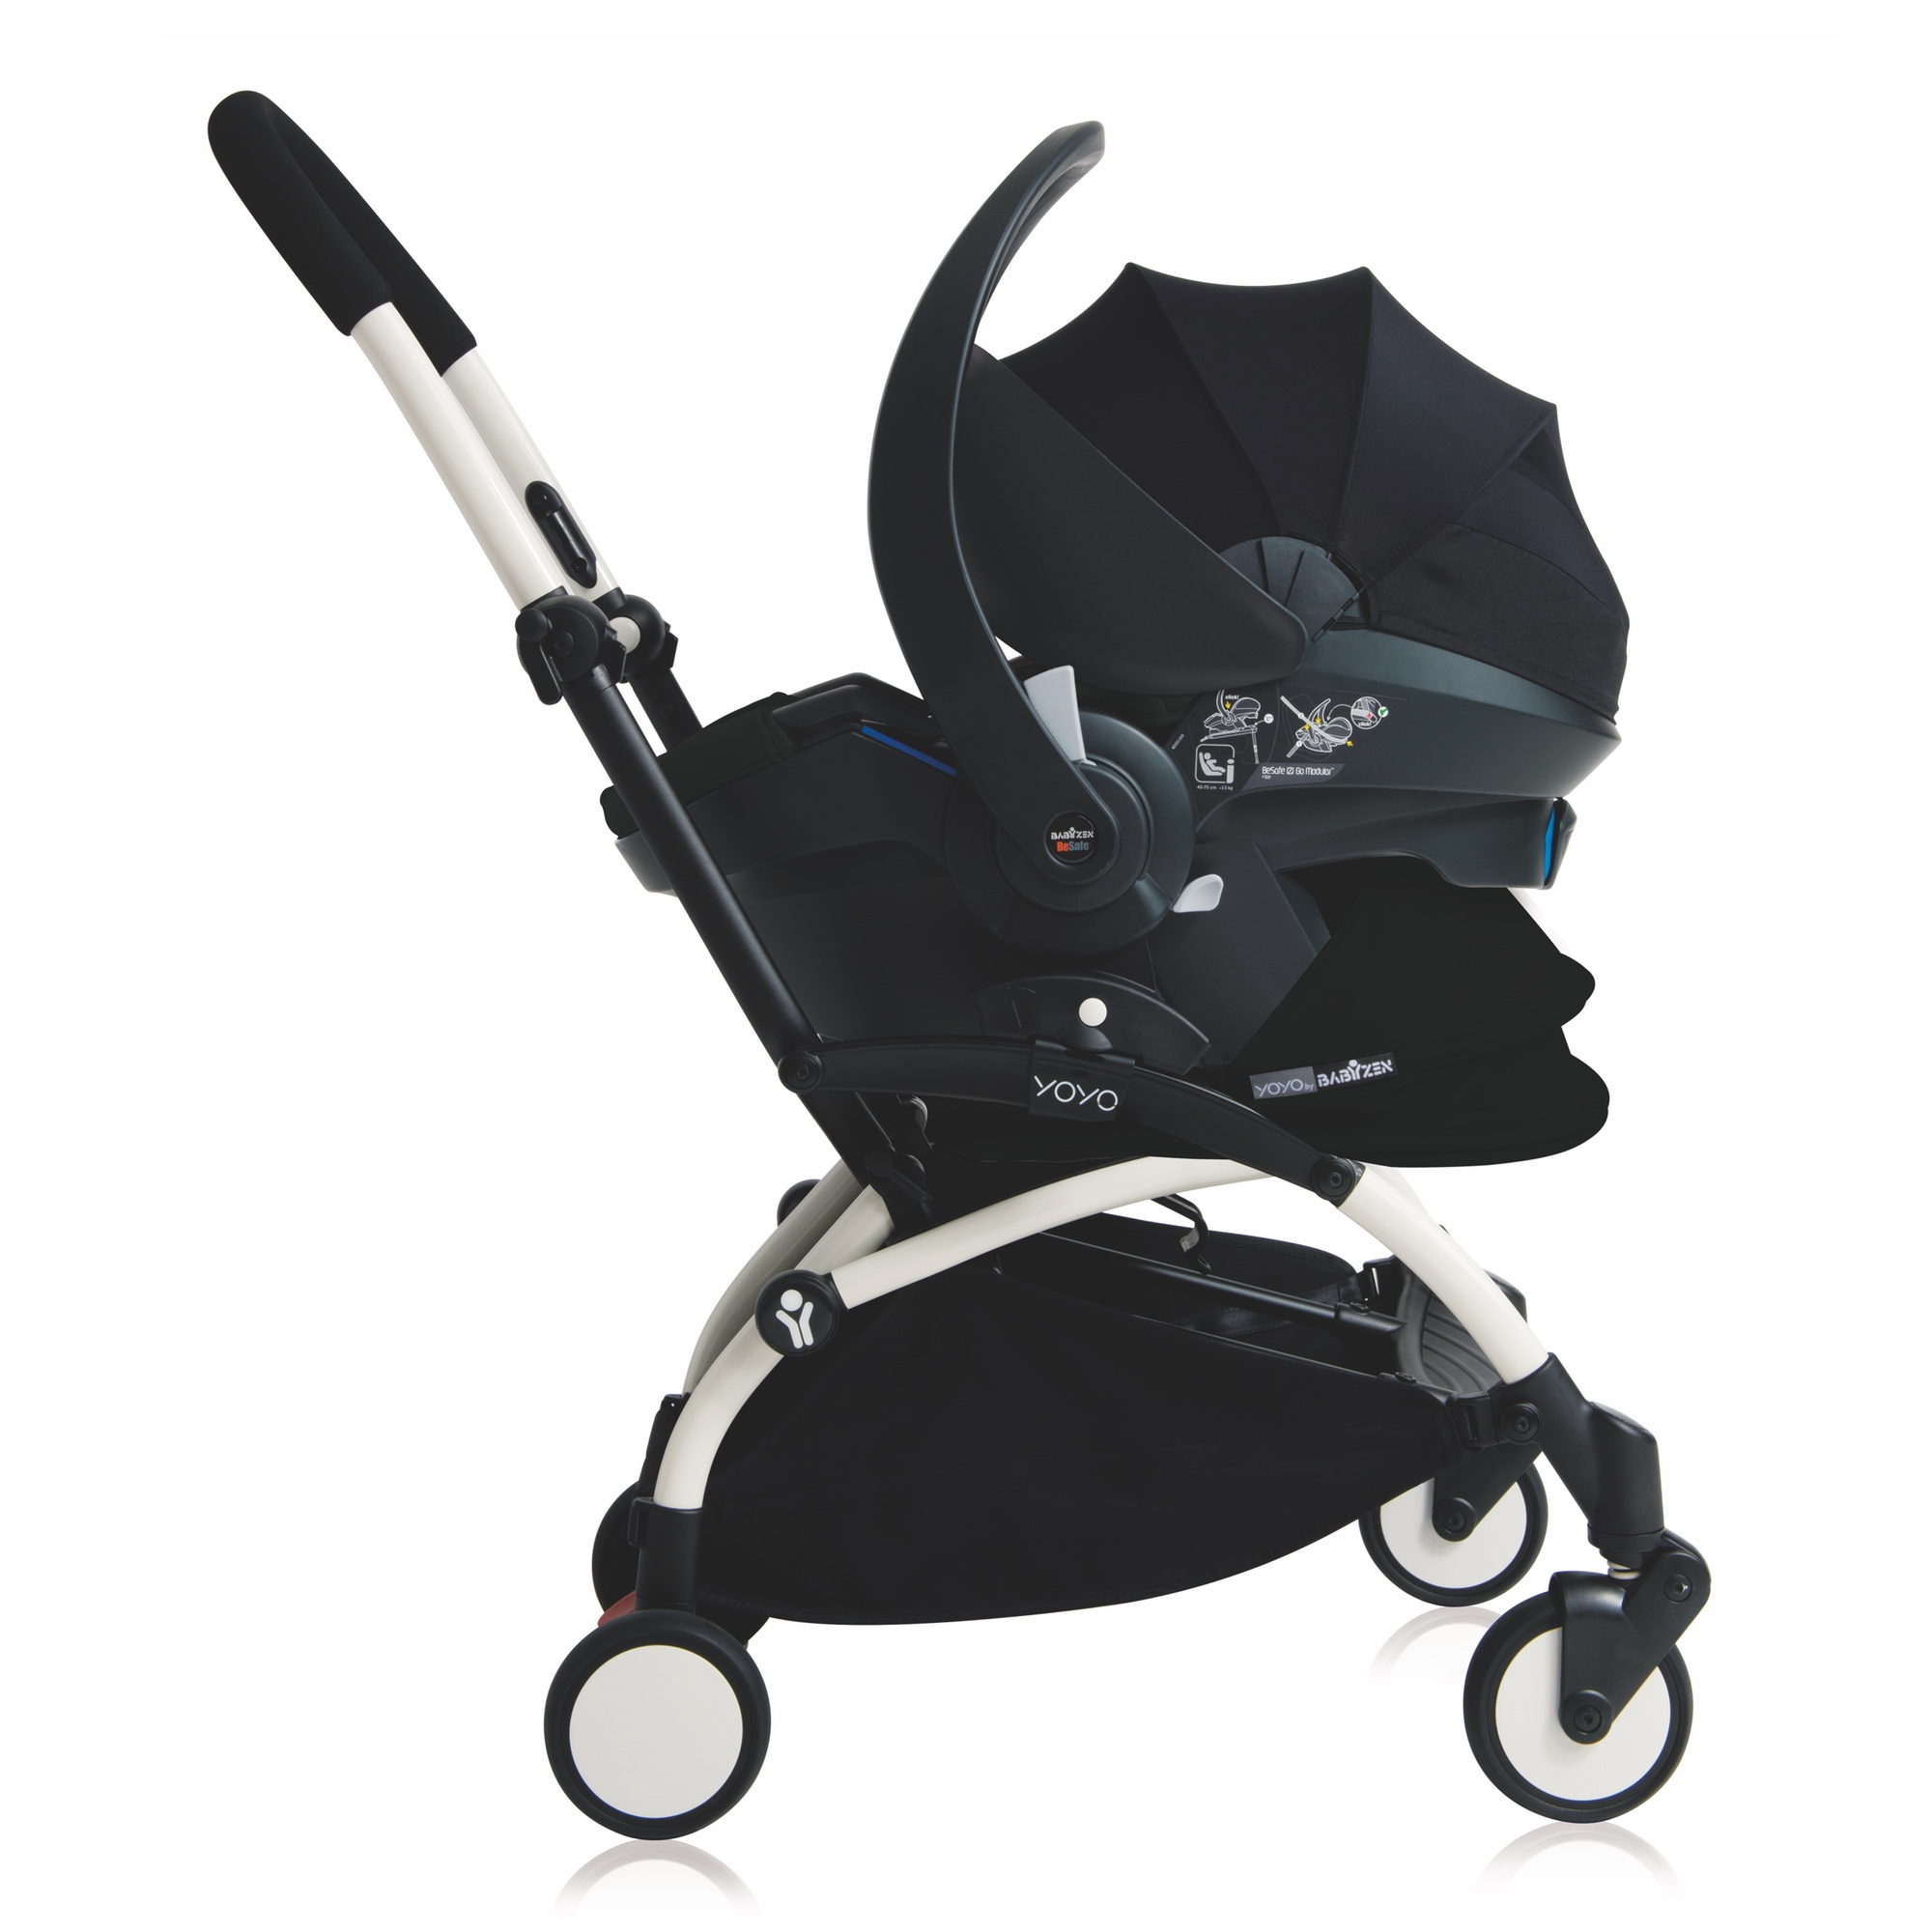 kinderwagen die zwergperten babyschalen reboarder. Black Bedroom Furniture Sets. Home Design Ideas